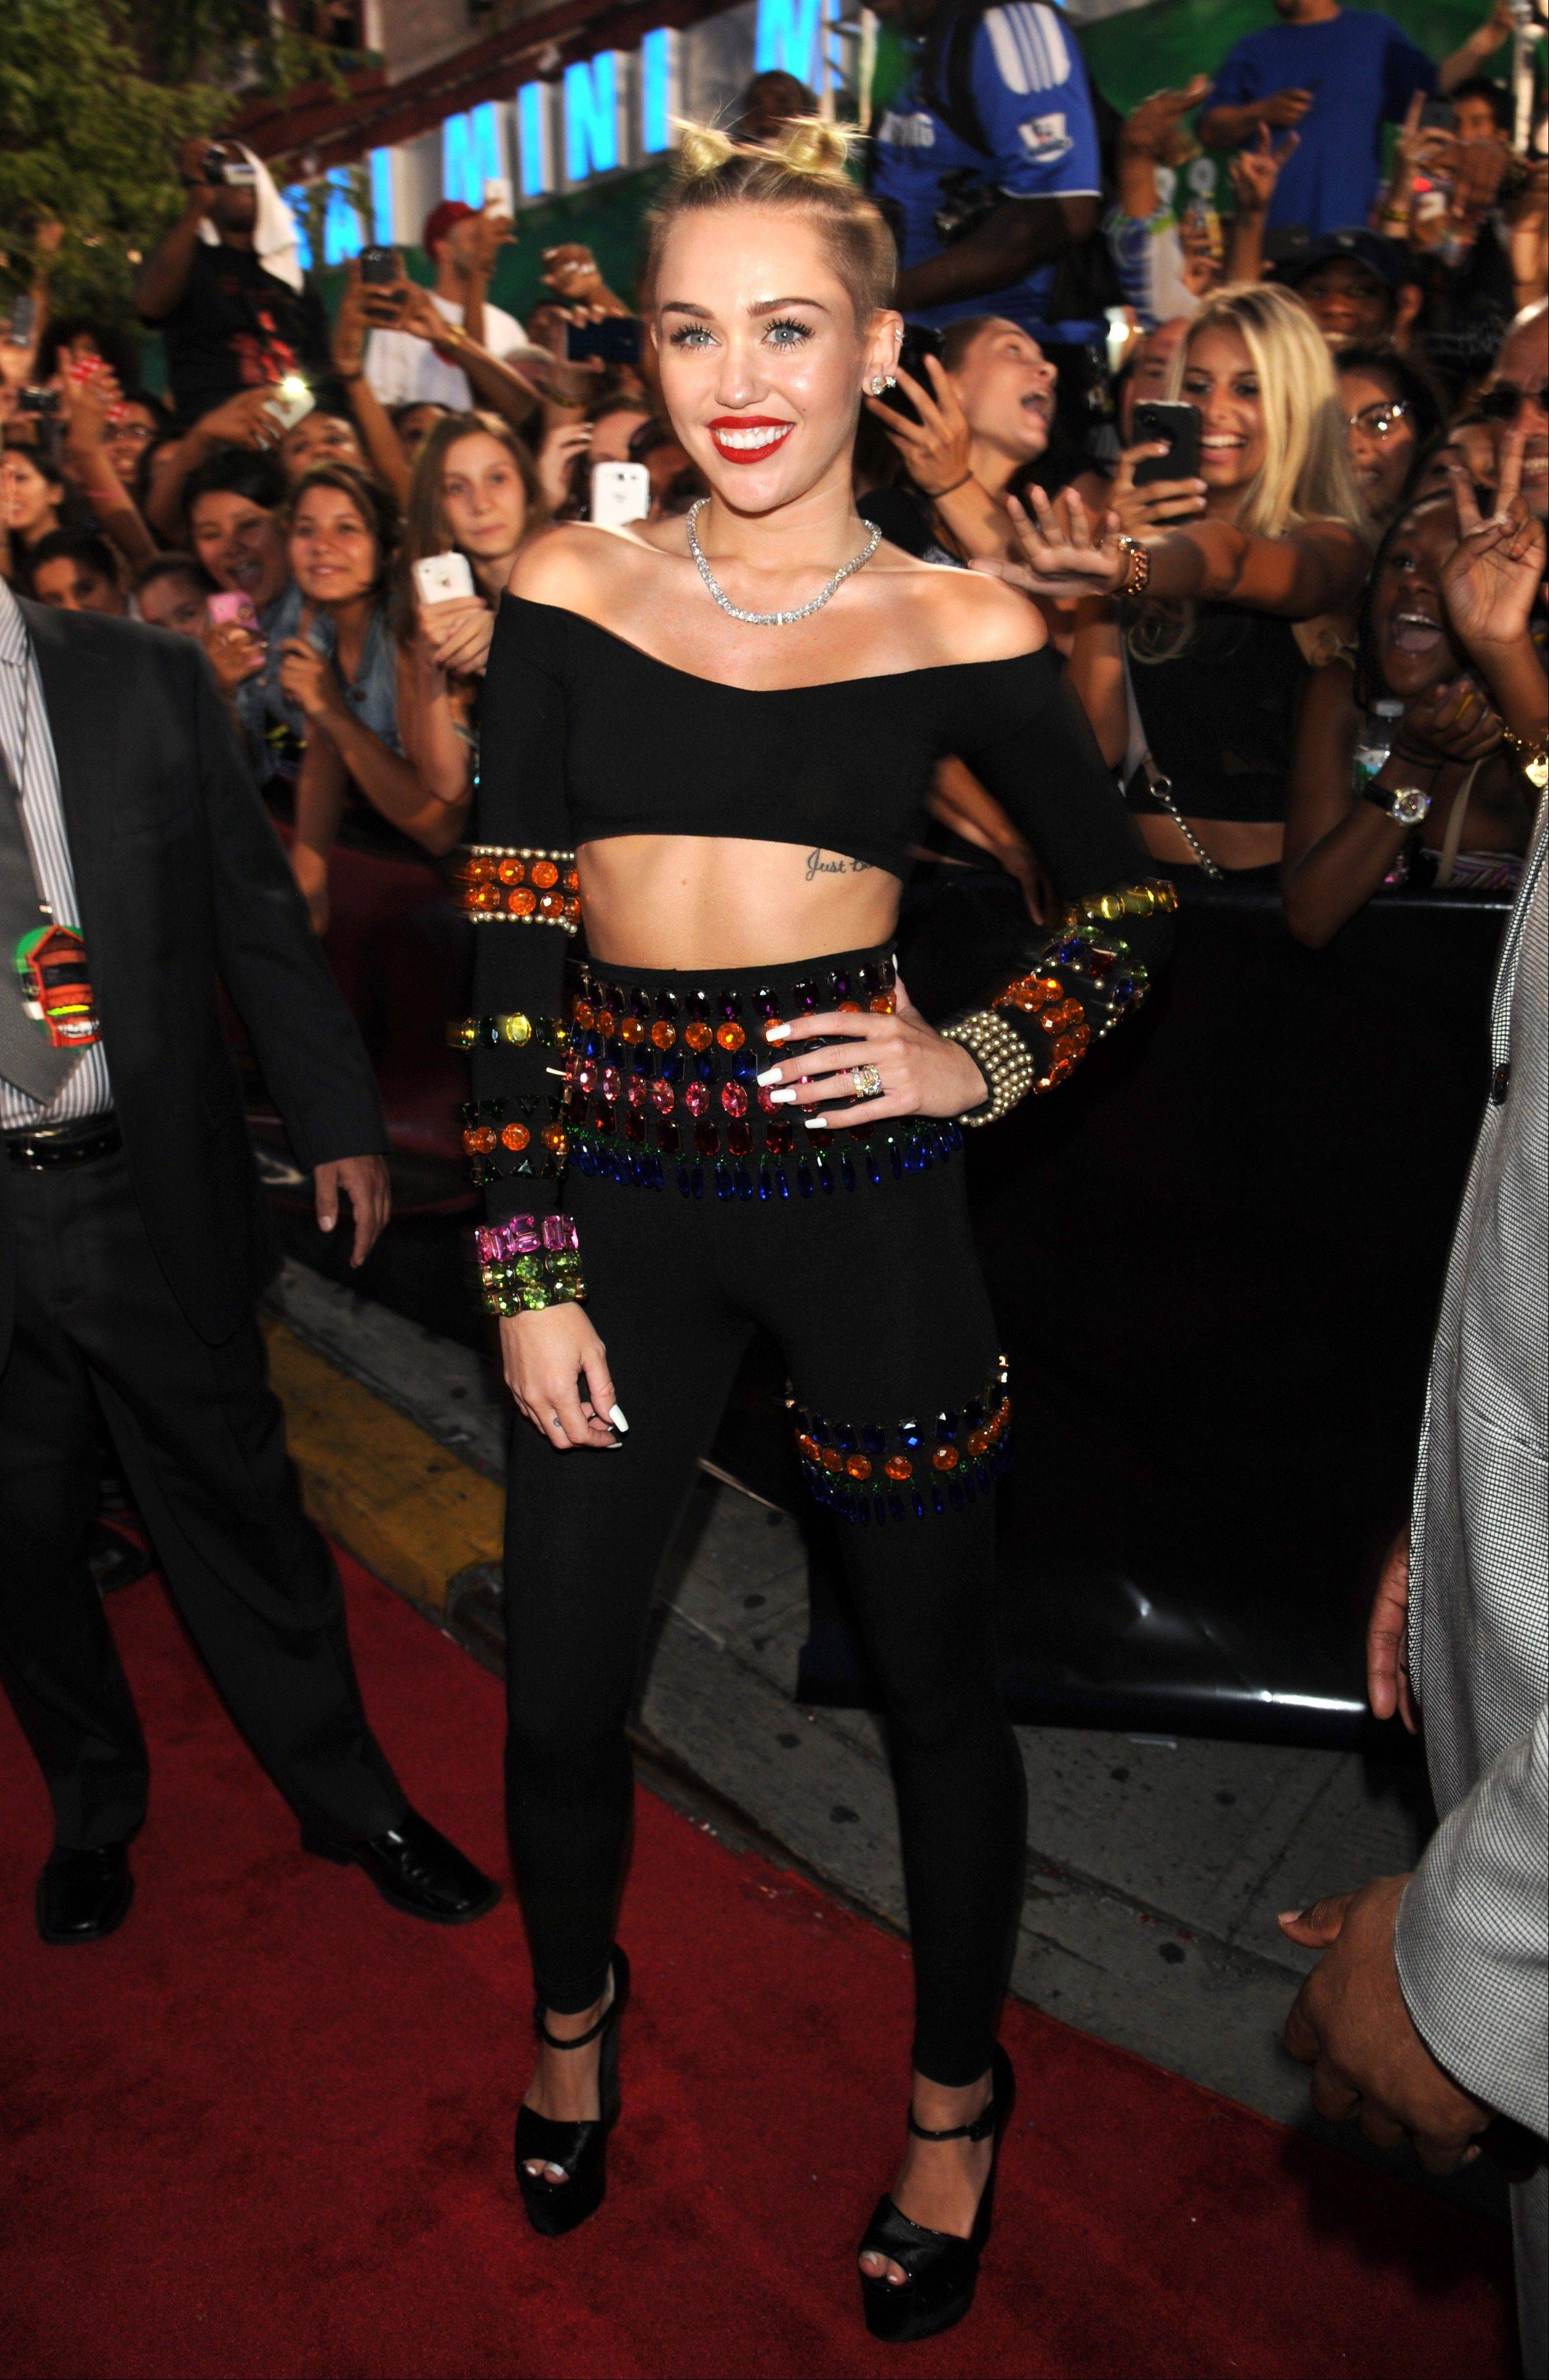 Miley Cyrus arrives at the MTV Video Music Awards on Sunday, Aug. 25, 2013, at the Barclays Center in the Brooklyn borough of New York.